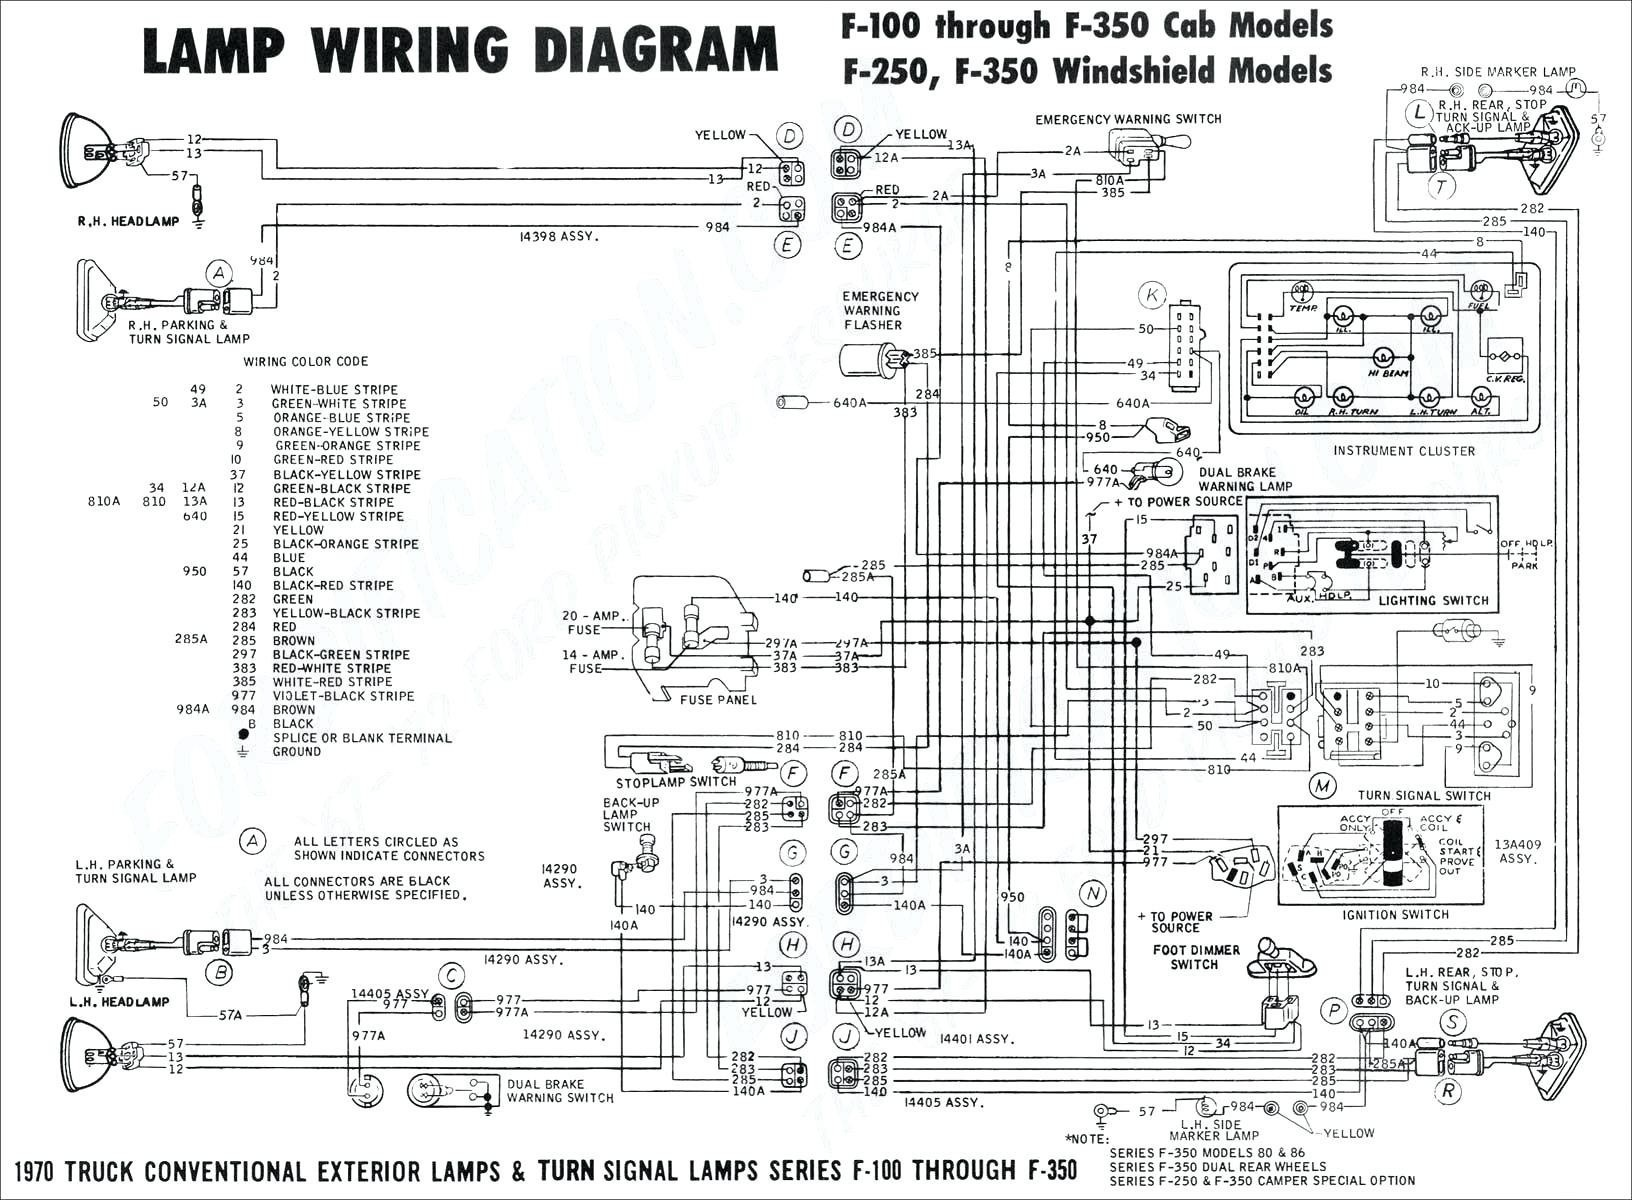 Mf 135 Diesel Wiring Diagram 1985 Dodge Pickup Wiring Diagram Of Mf 135 Diesel Wiring Diagram